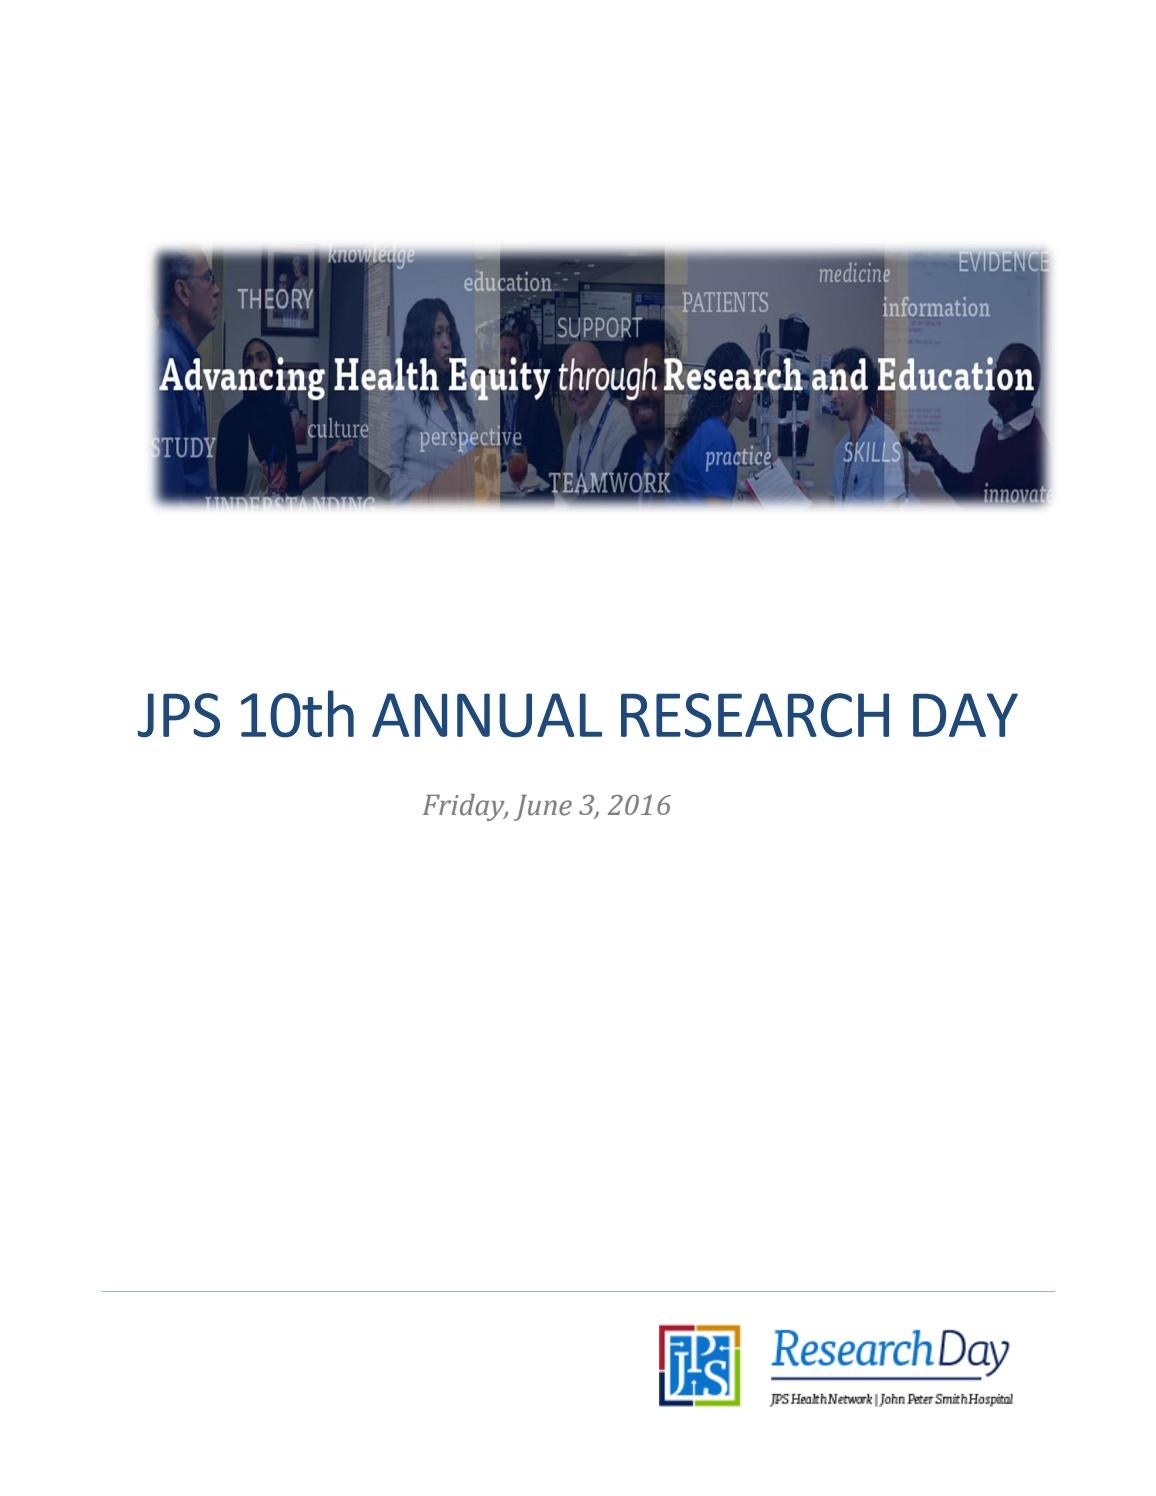 JPS Research Day 2016 Program Booklet by JPS Health Network - issuu